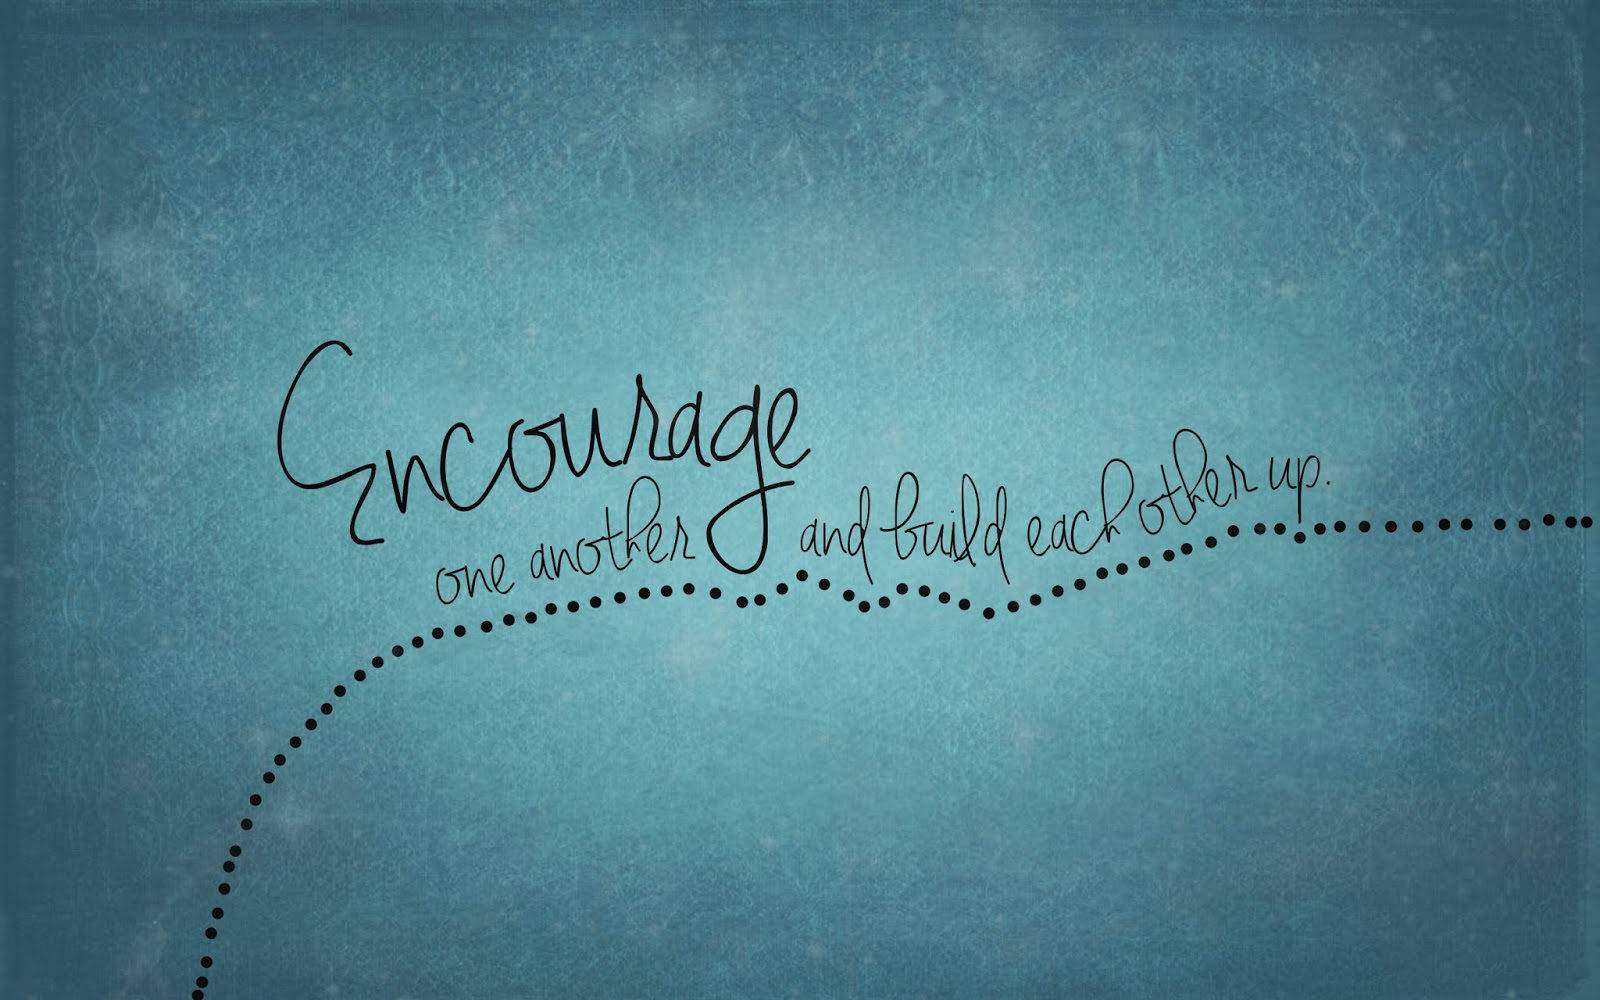 Encourage One Another - Advanced English Vocabulary - Words to INSPIRE